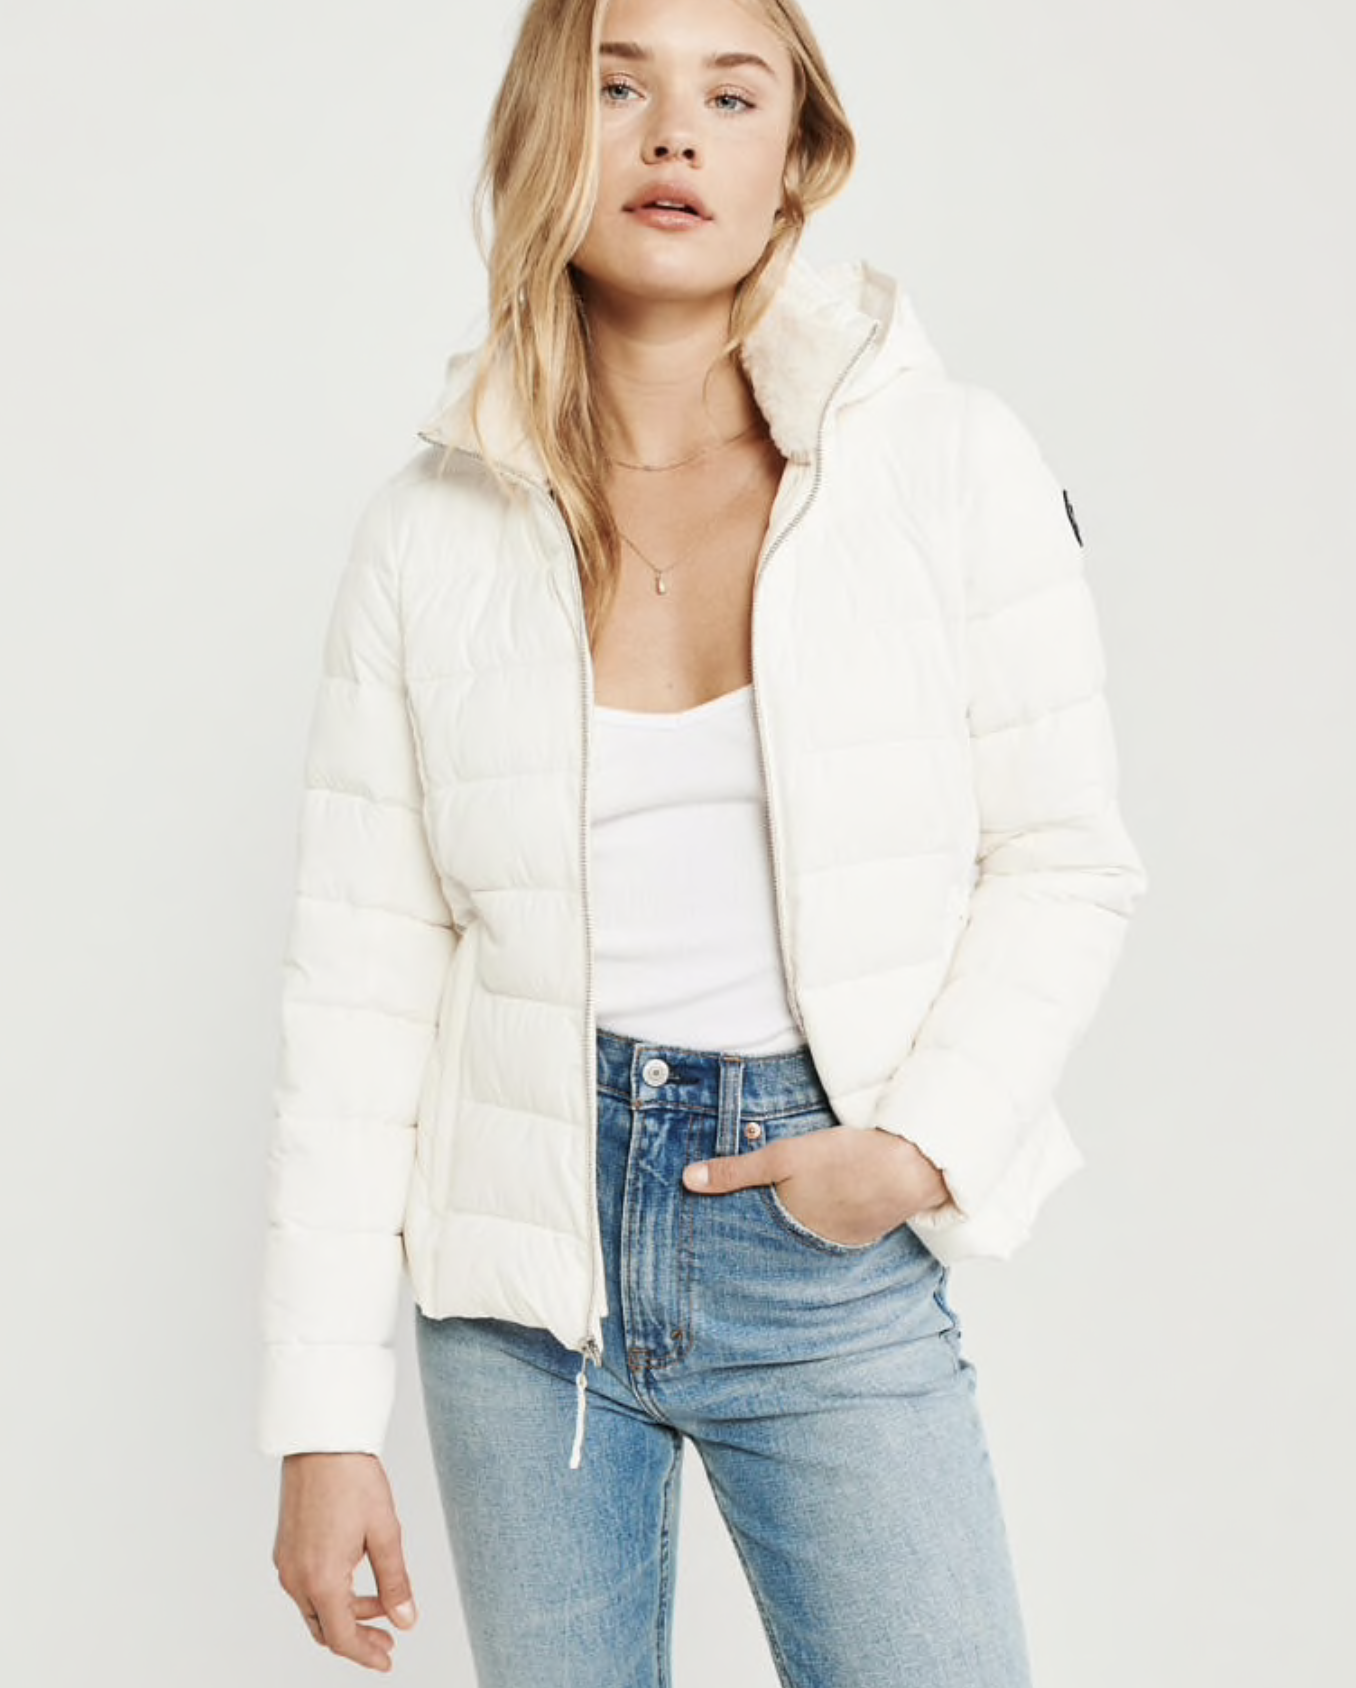 cyber monday | deals | christmas gifts | holiday shopping | Mash Elle | puffer jacket